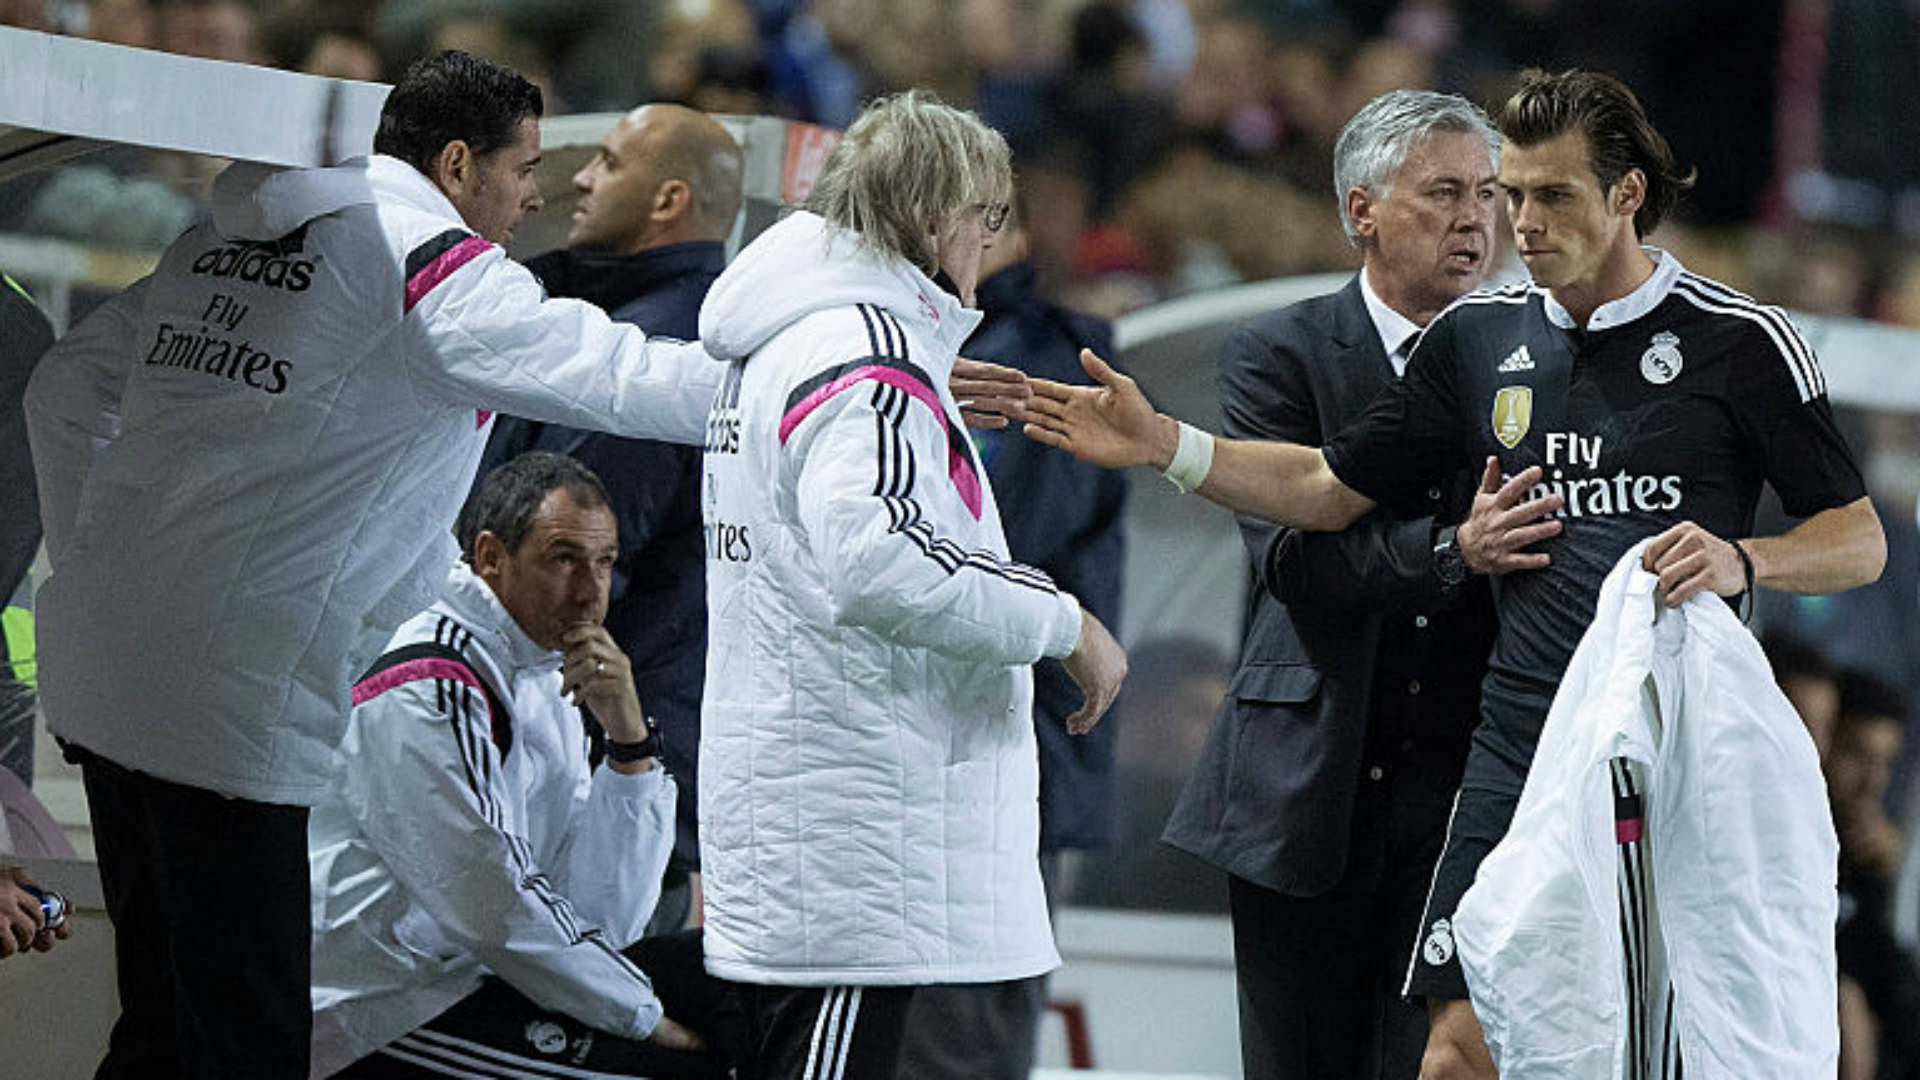 Gareth Bale, Carlo Ancelotti and Fernando Hierro during a Real Madrid game